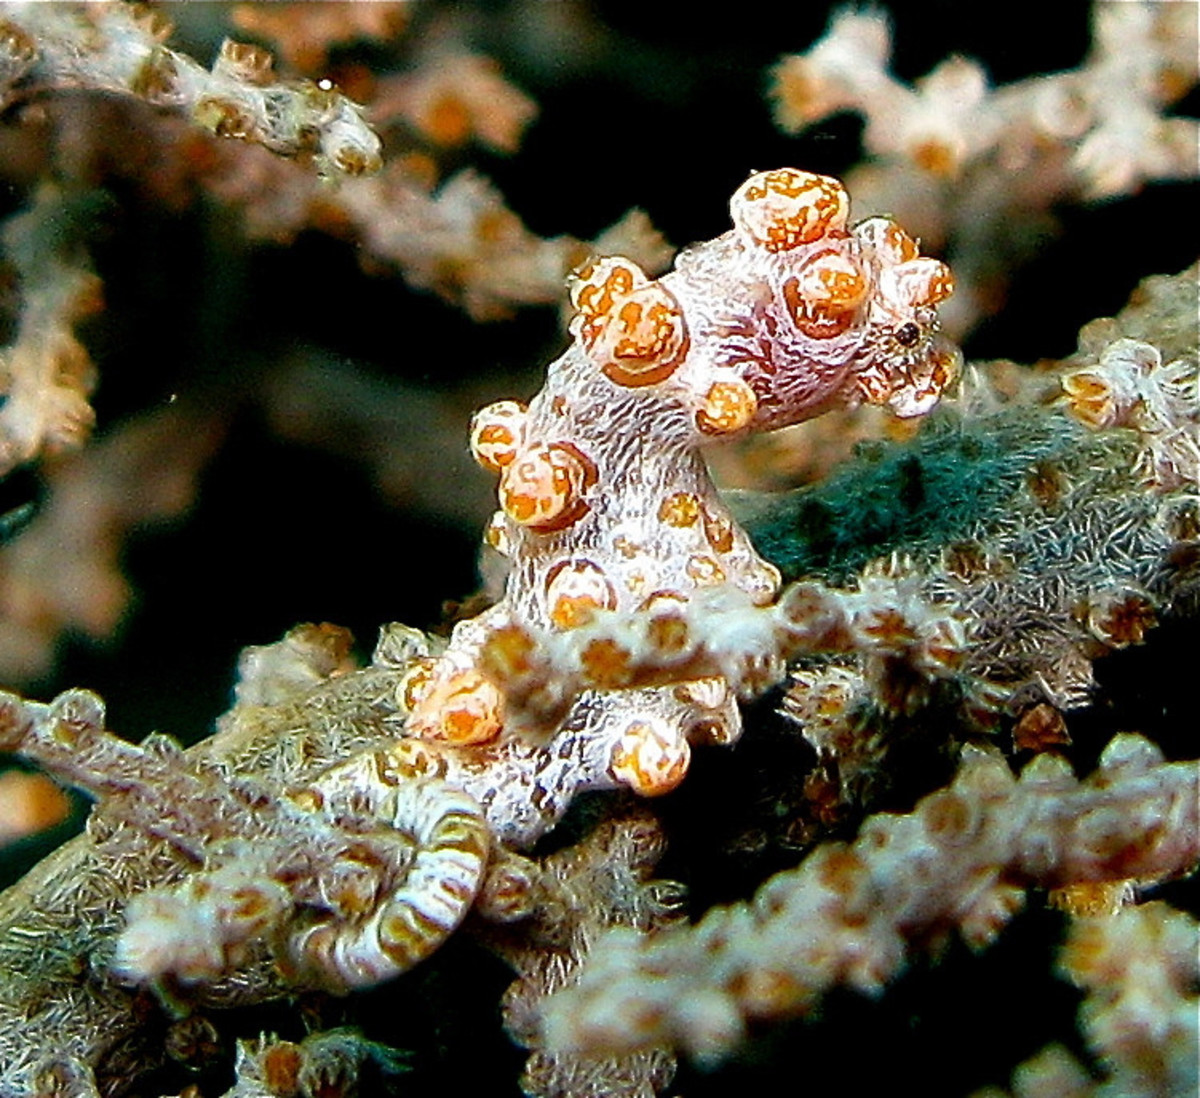 A yellow variety of the Bargibant's seahorse